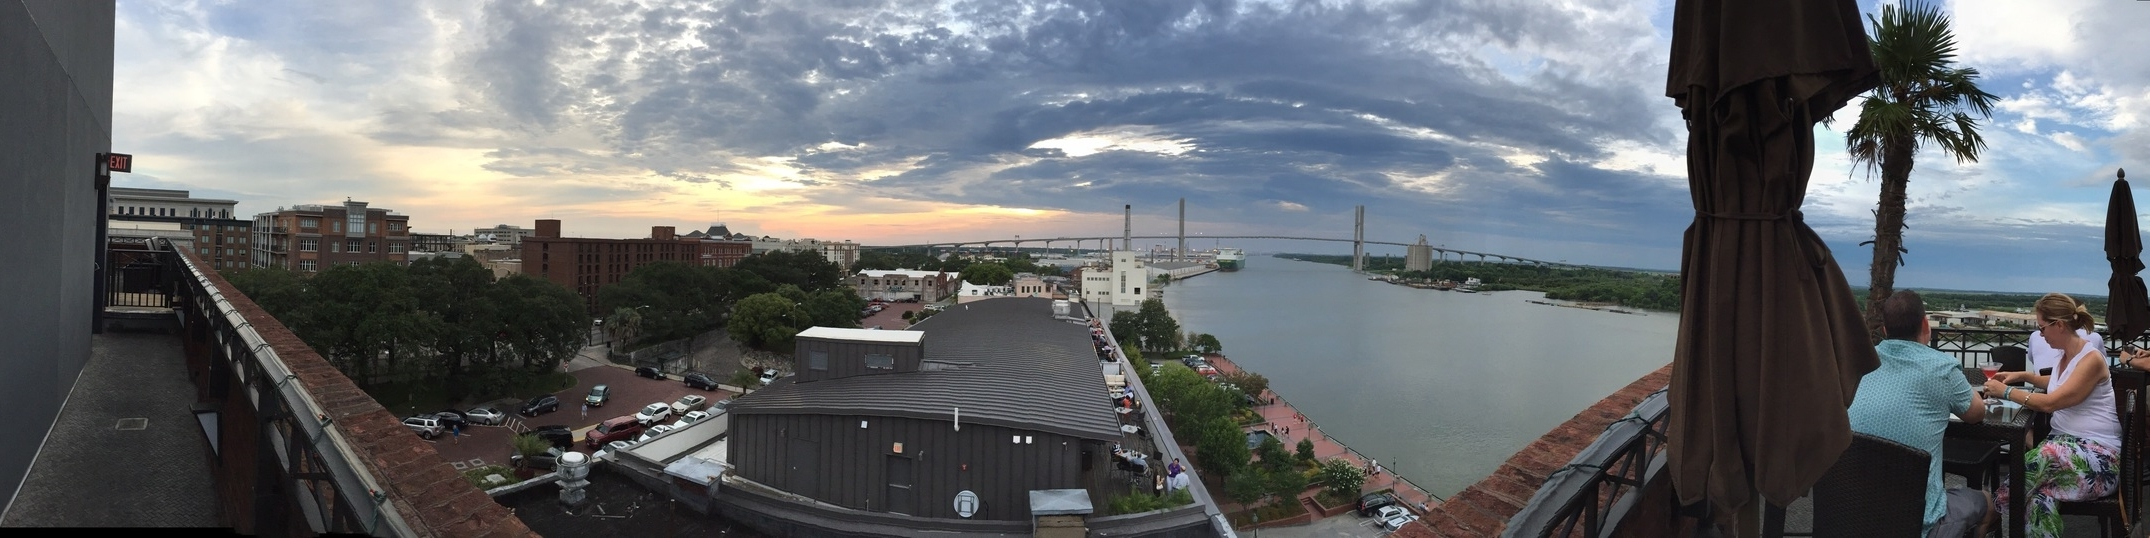 Sunset over Savannah